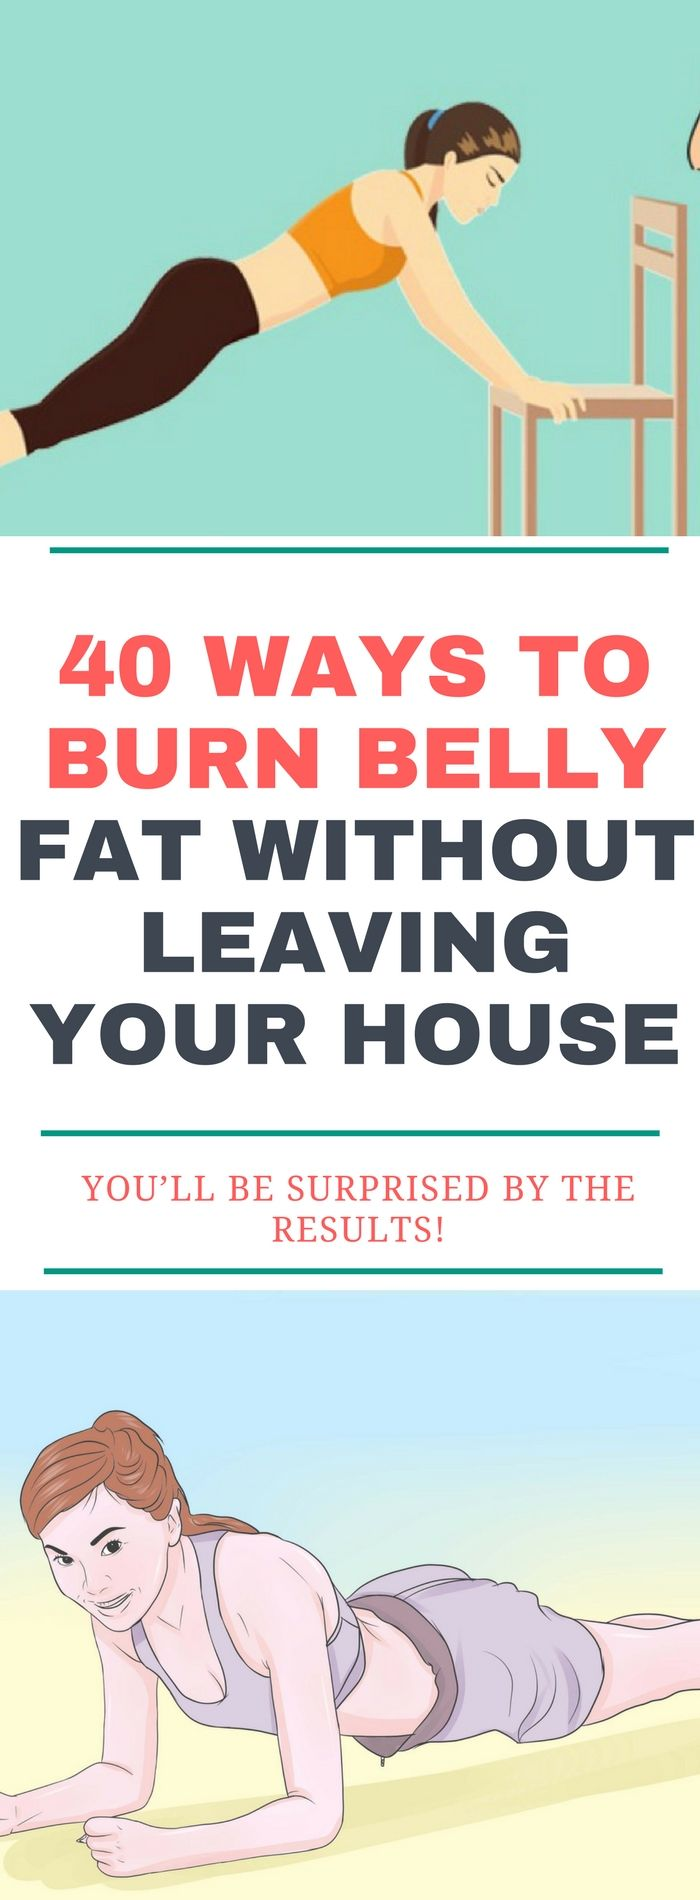 40 Ways To Burn Belly Fat Without Leaving Your House.!! Read!! #fitnessgirl #fitnessmom #transformations #fitnesslife #abs #train #healthy #healthylifestyle #sisepuede #tattoo #tattoossometimes #fridaynight #gymsession #weightloss #legsgains #ladybeast #triplet #fitnessjourney #fitnesslifestyle #fitnessfreak #girlswholift #nopainnogain #getstrong #mondaymiles #chestday #seenonmyrun #trainhard #strengthtraining #physiquefreak #catsofinstagram